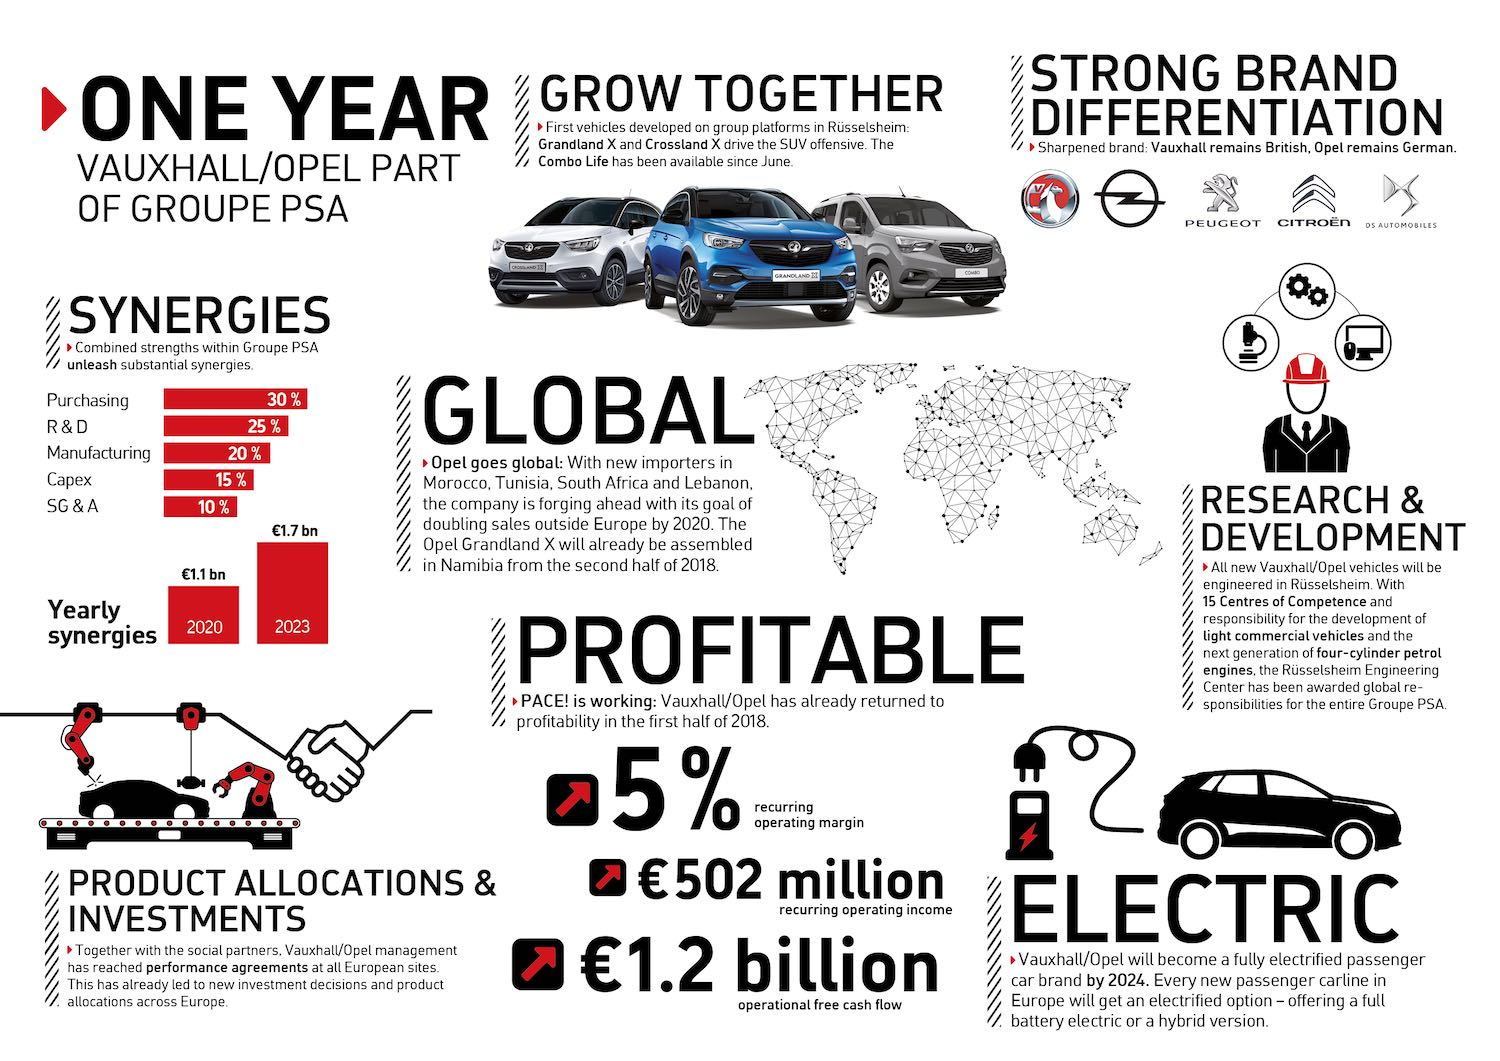 Vauxhall under PSA - one year on